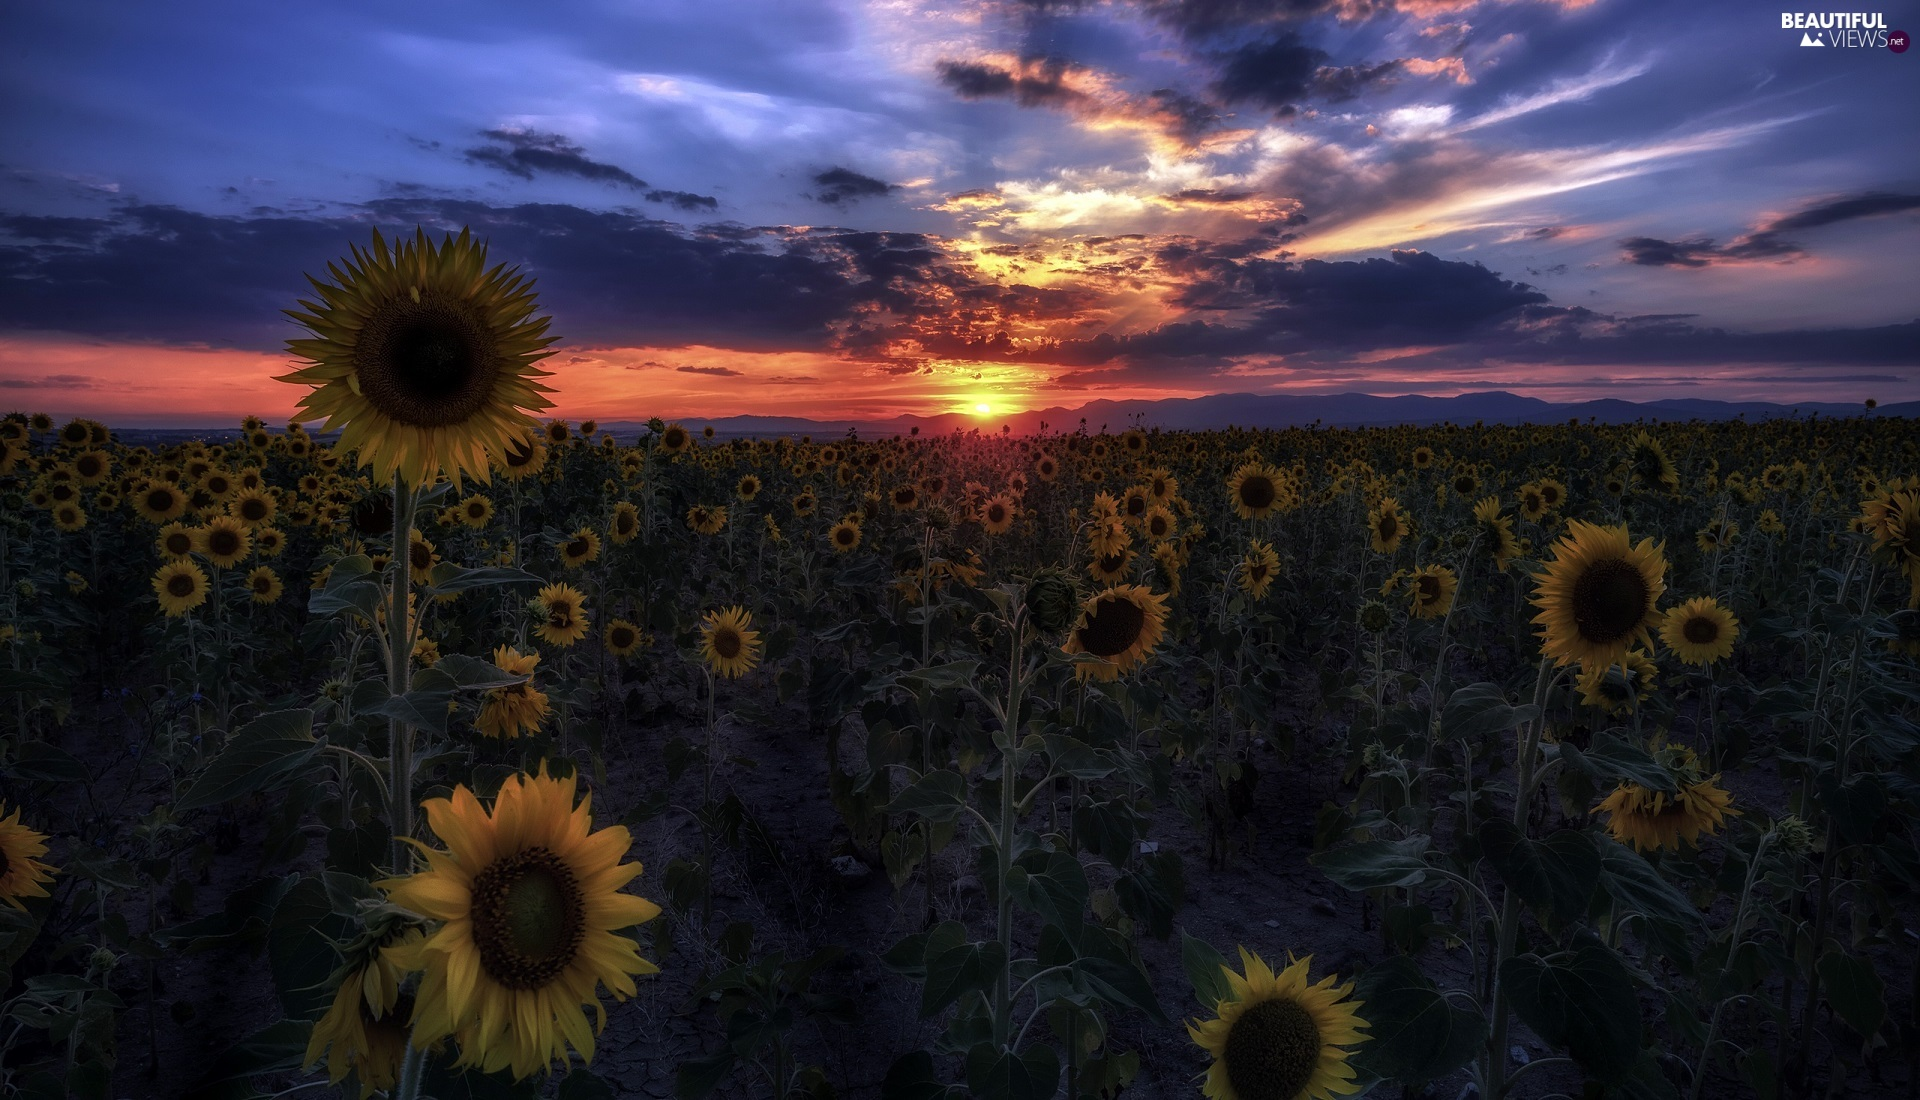 Great Sunsets, Flowers, Nice sunflowers, Field